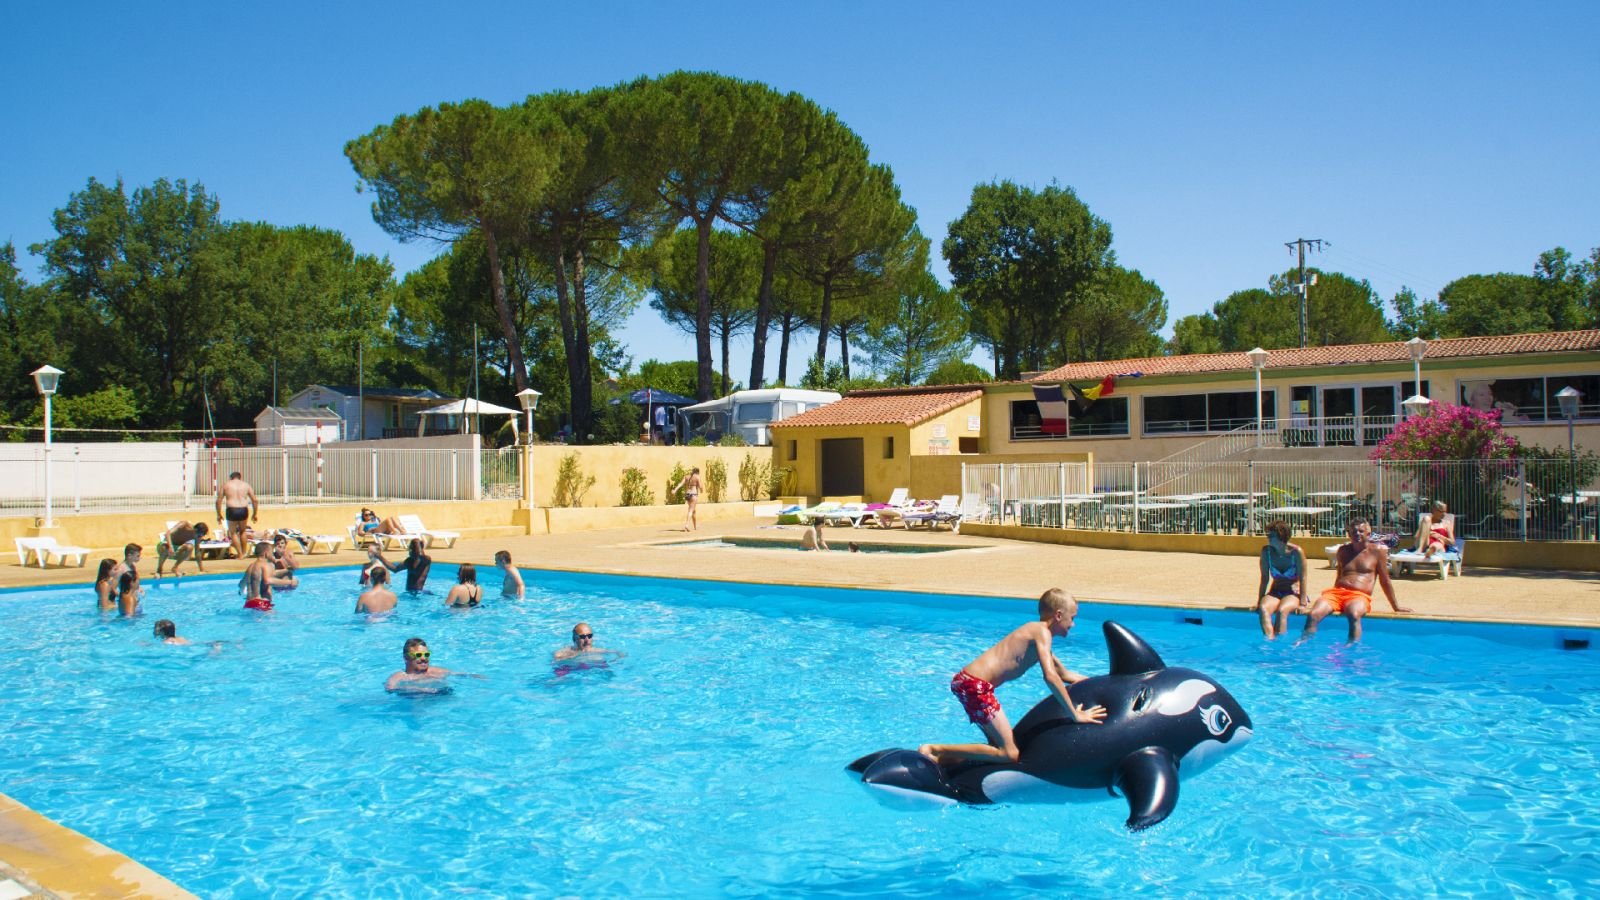 A 3-Star Campsite In Provence For Your Holidays In The South ... intérieur Camping Var Avec Piscine